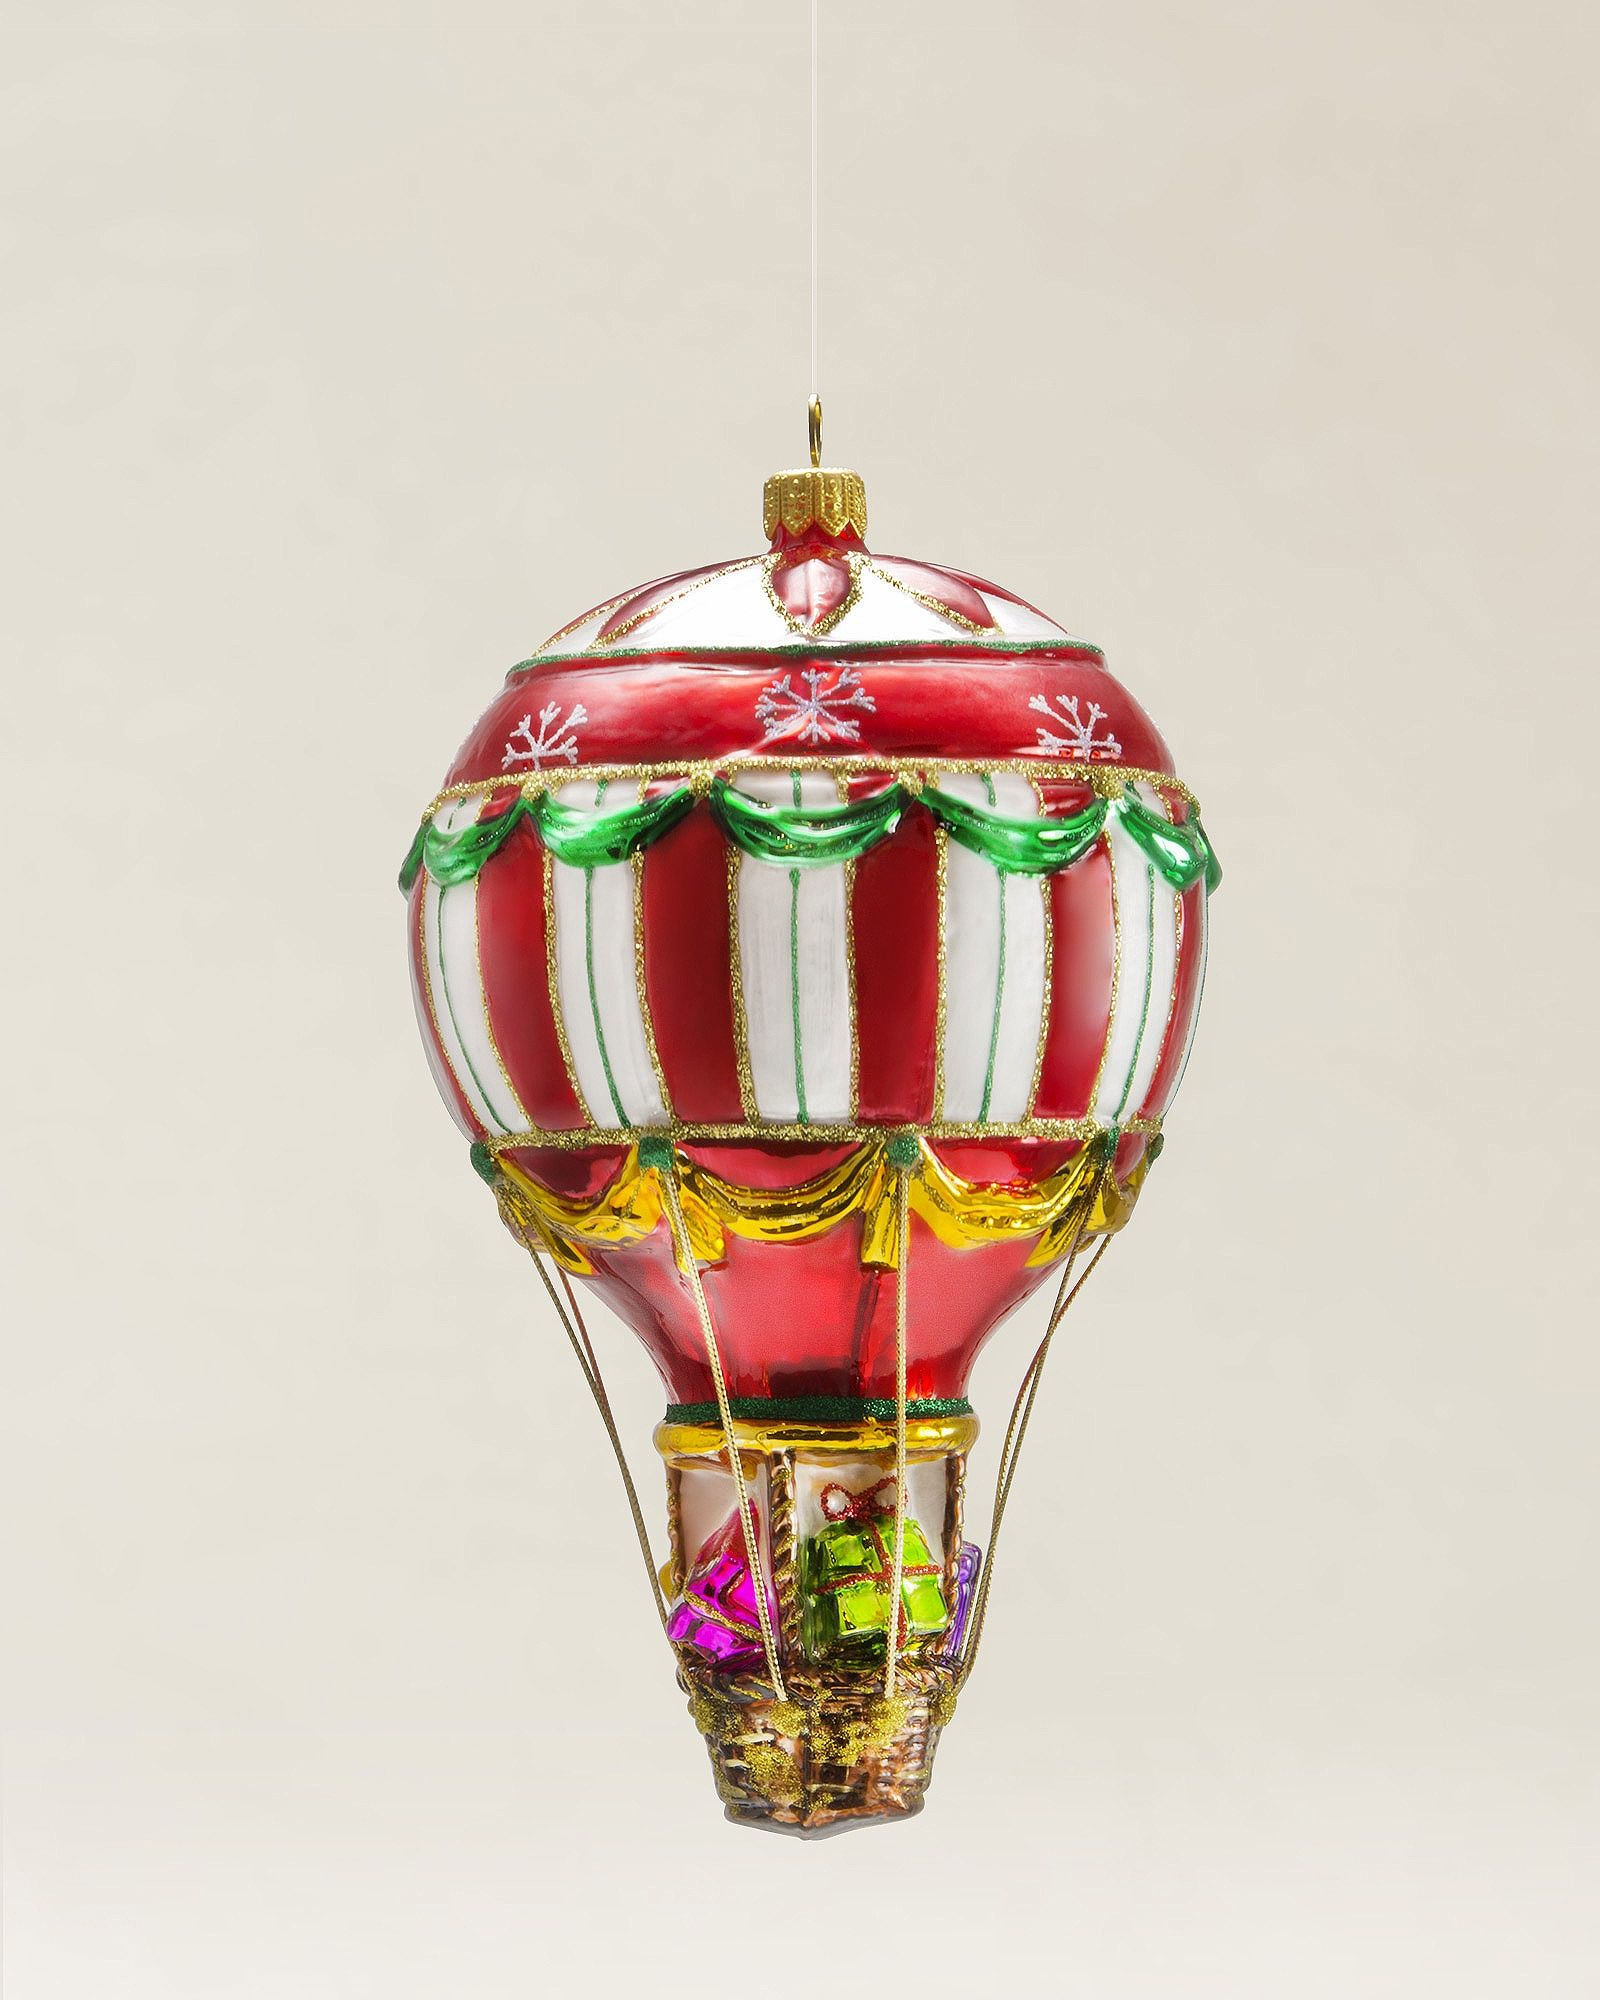 Hot Air Balloon Blown Glass Ornament | Christmas Ornaments ...